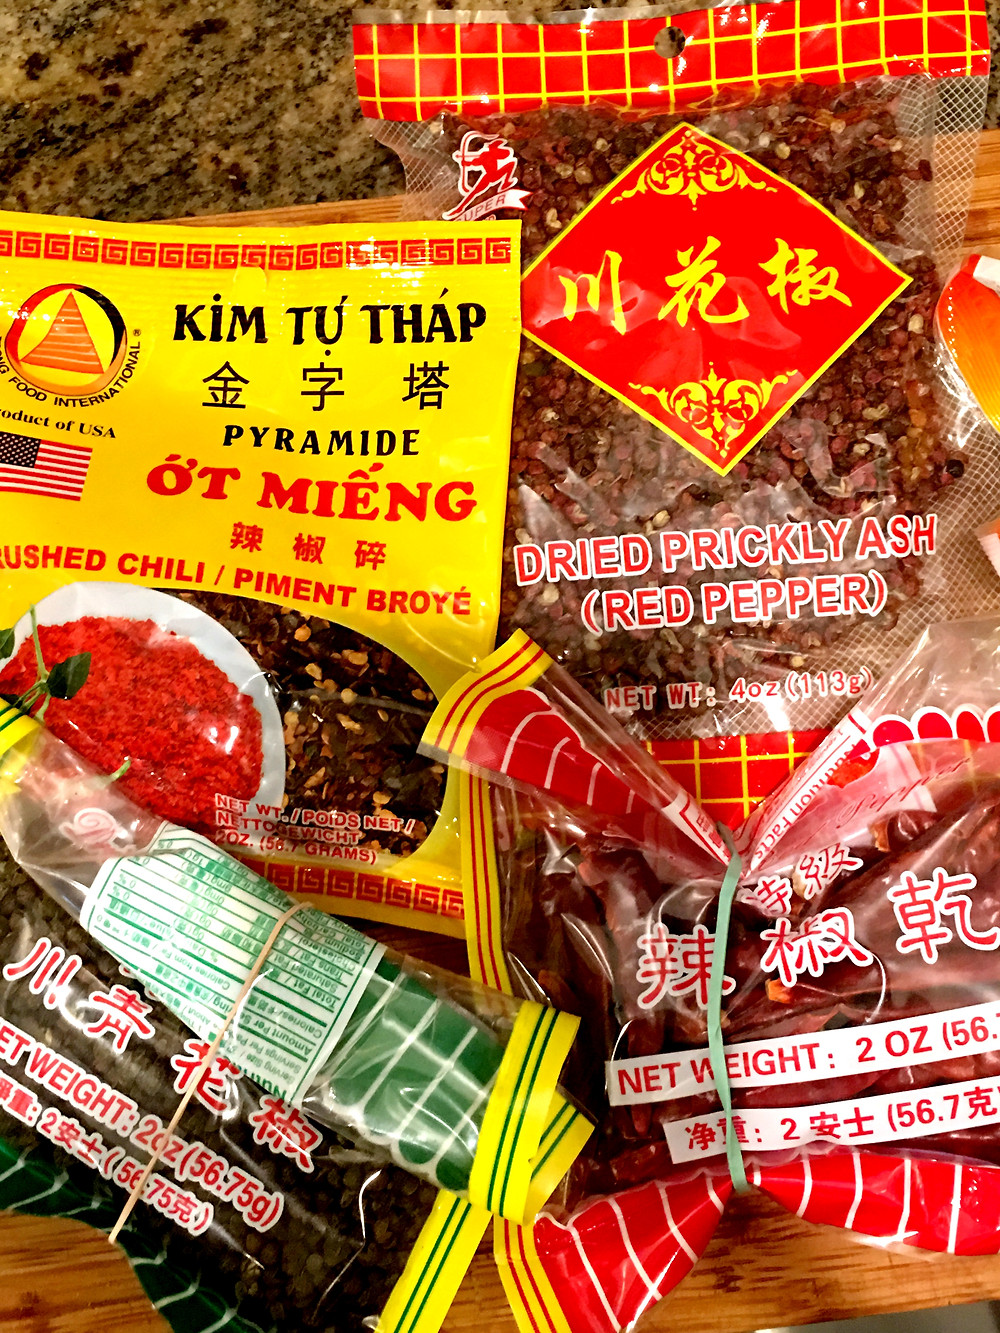 Ingredients for Sichuan Fried Chicken include Sichuan peppercorns, dried chilis, and chili flakes